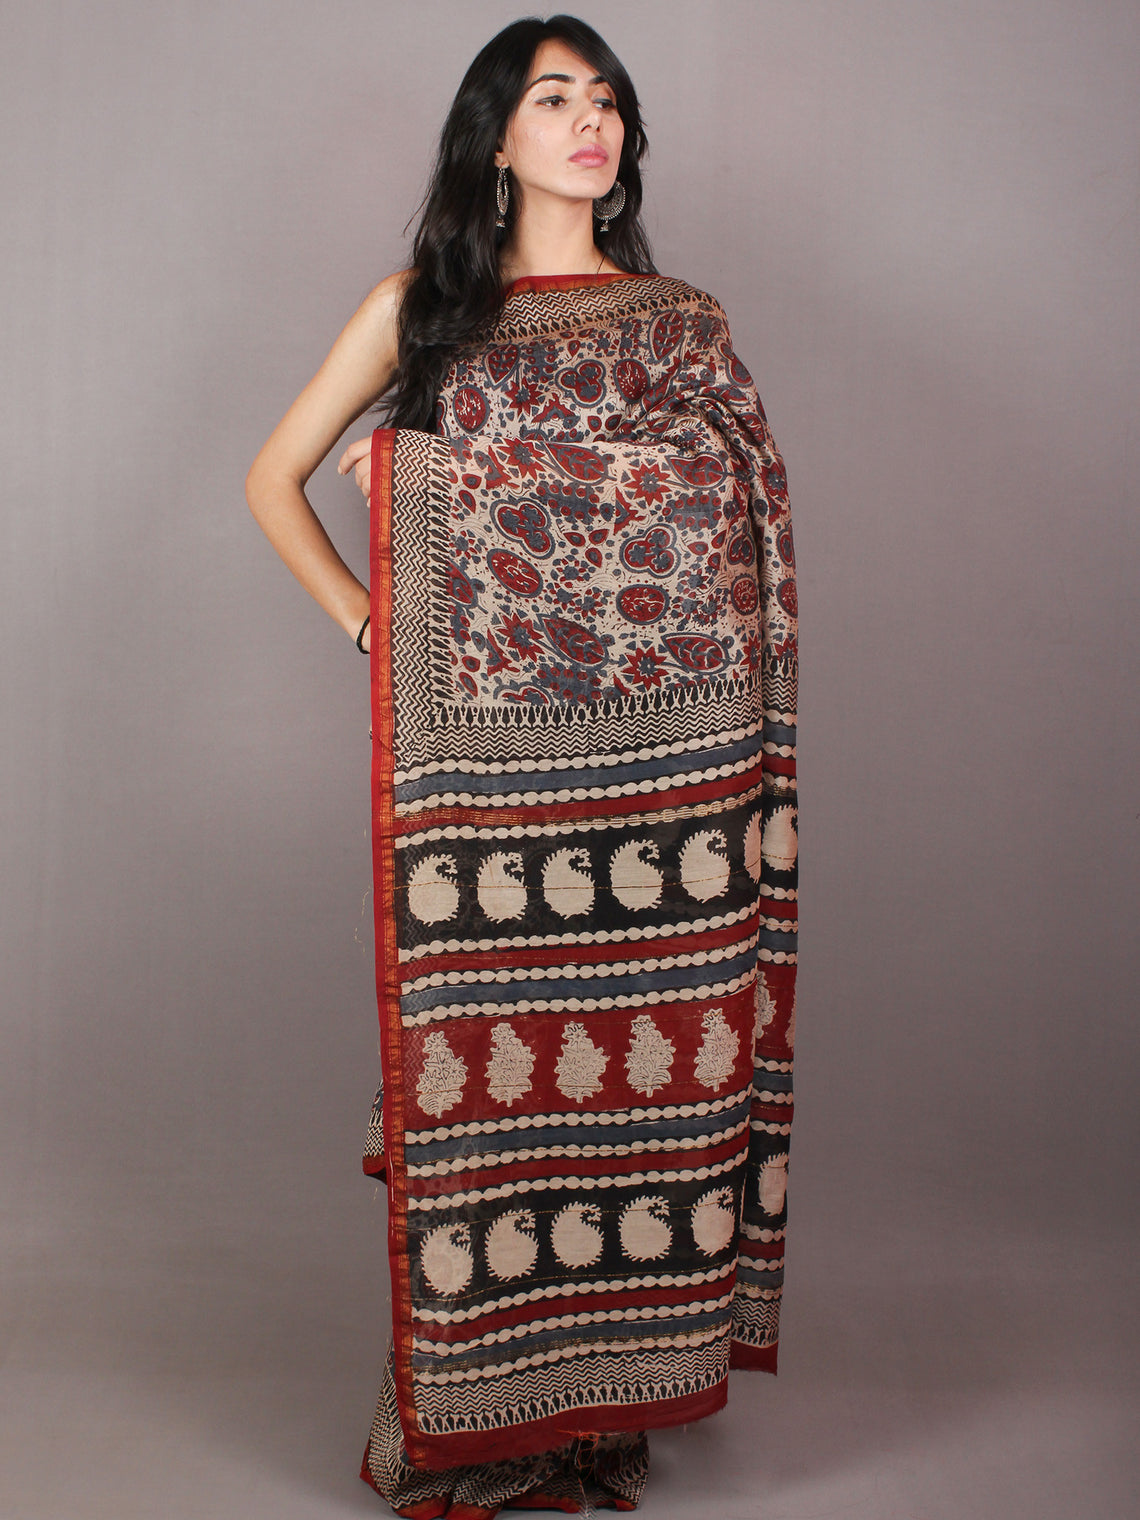 Brown Maroon Red Hand Block Printed in Natural Colors Chanderi Saree - S03170715